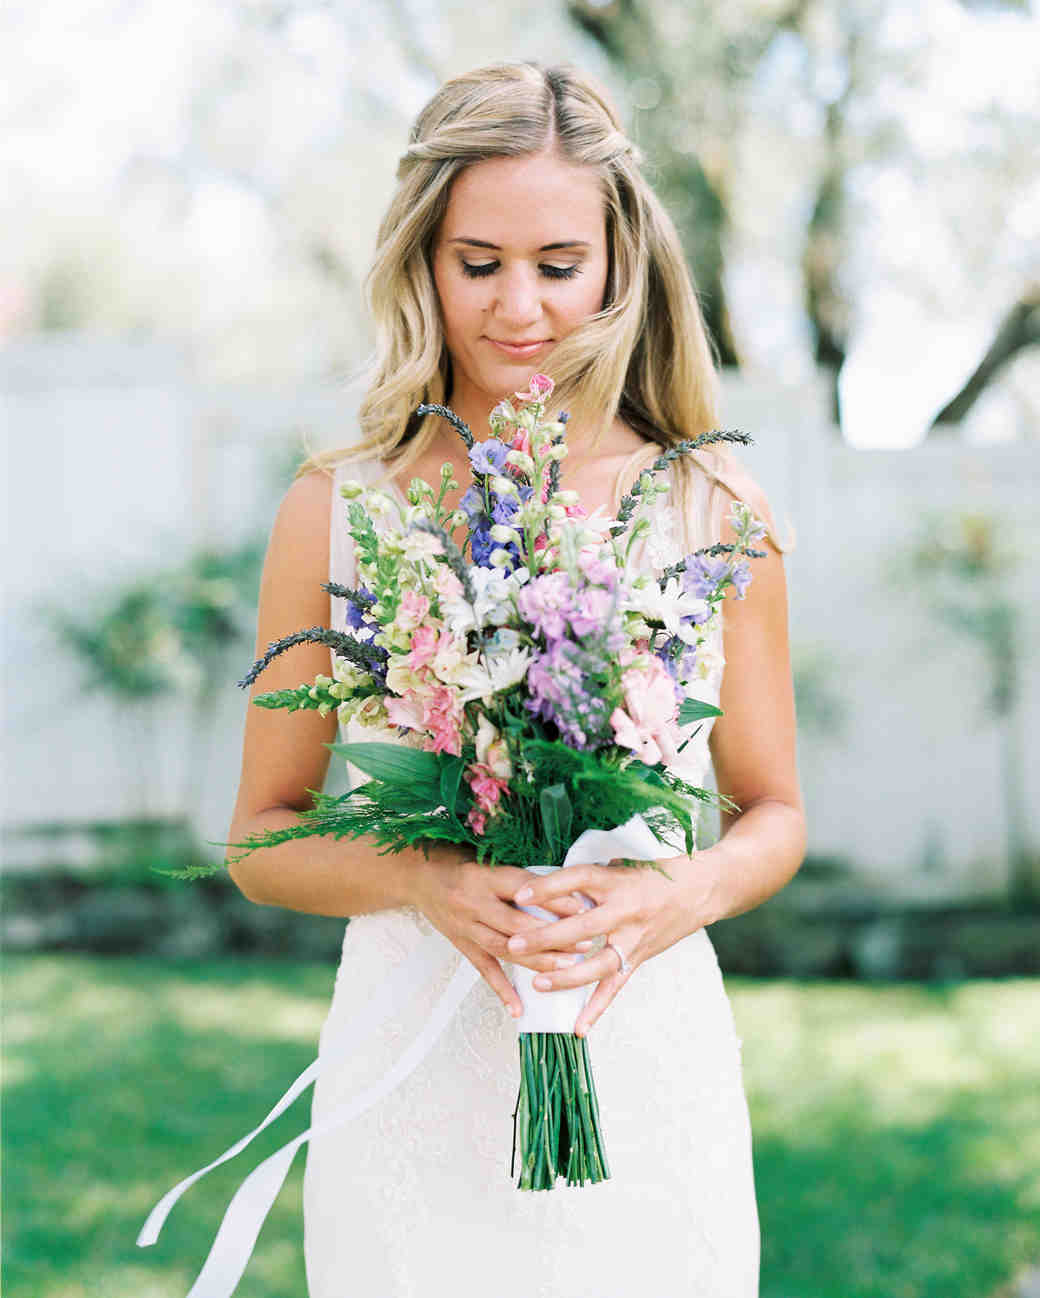 Bride Holding a Colorful Wedding Bouquet